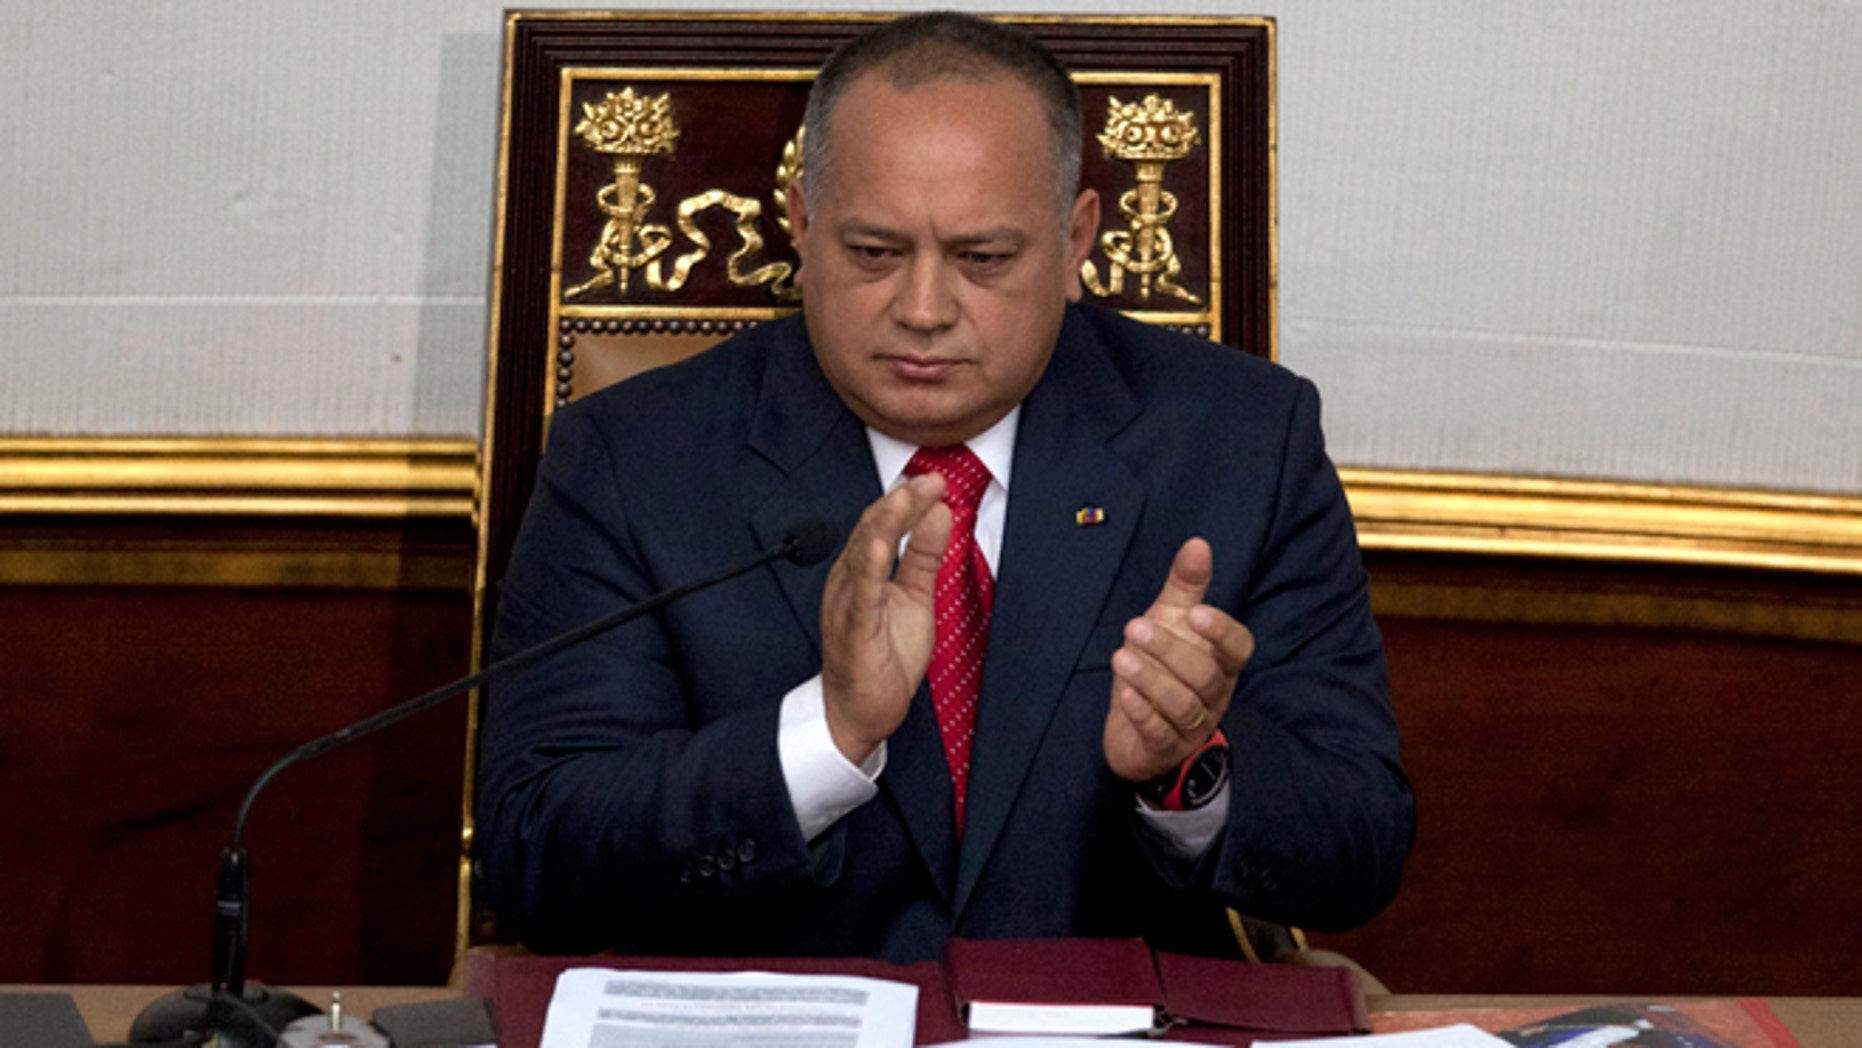 National Assembly President Diosdado Cabello in a Jan. 5, 2013 file photo.